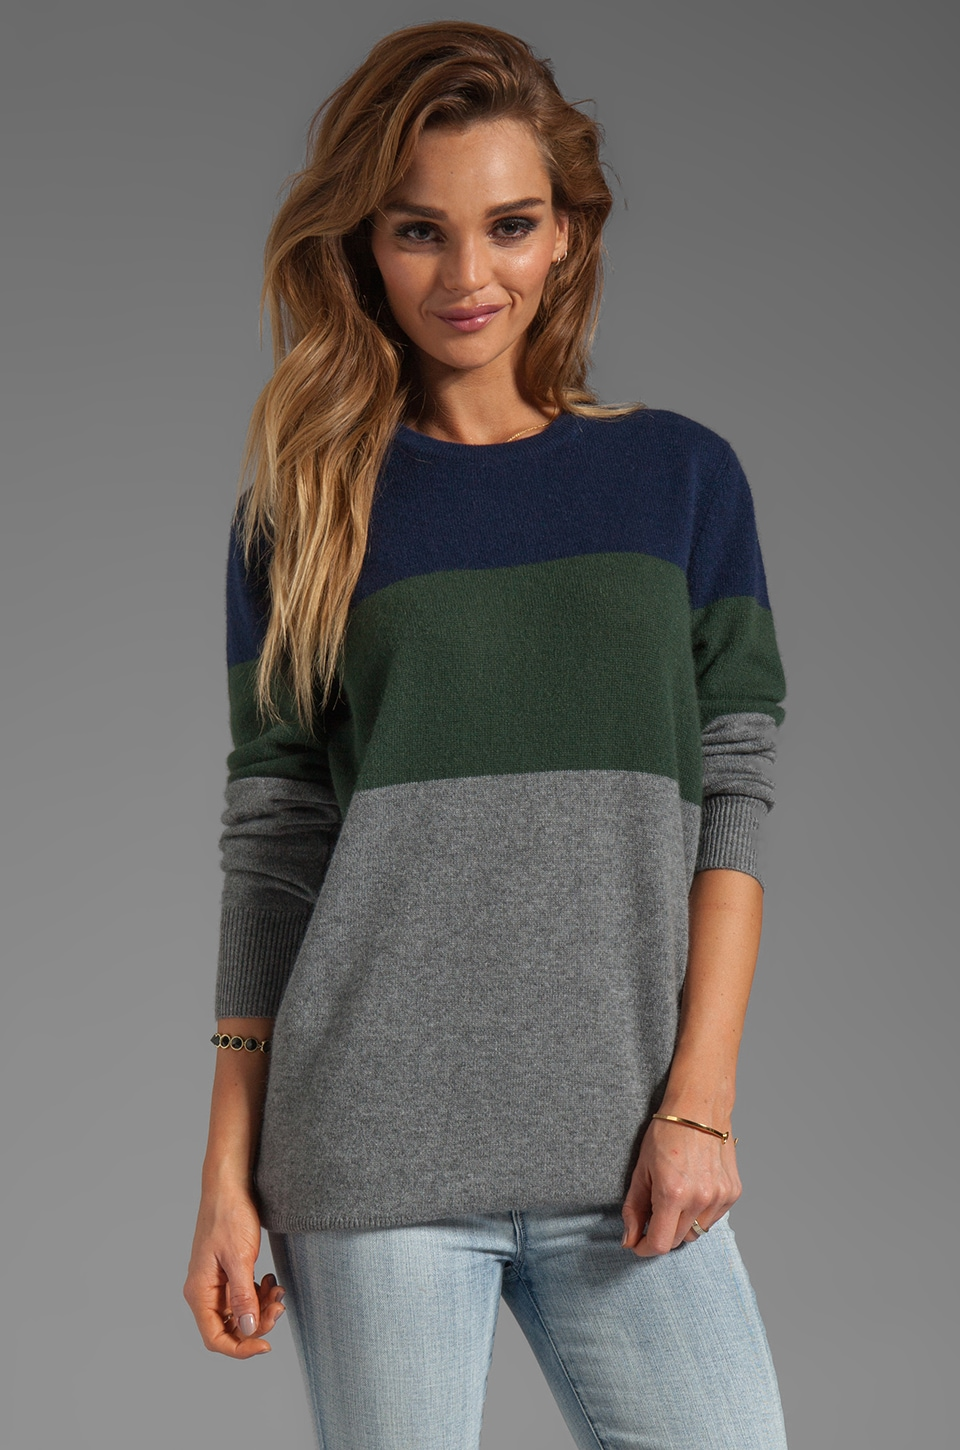 Equipment Rei Crew Neck Sweater in Heather Grey Multi